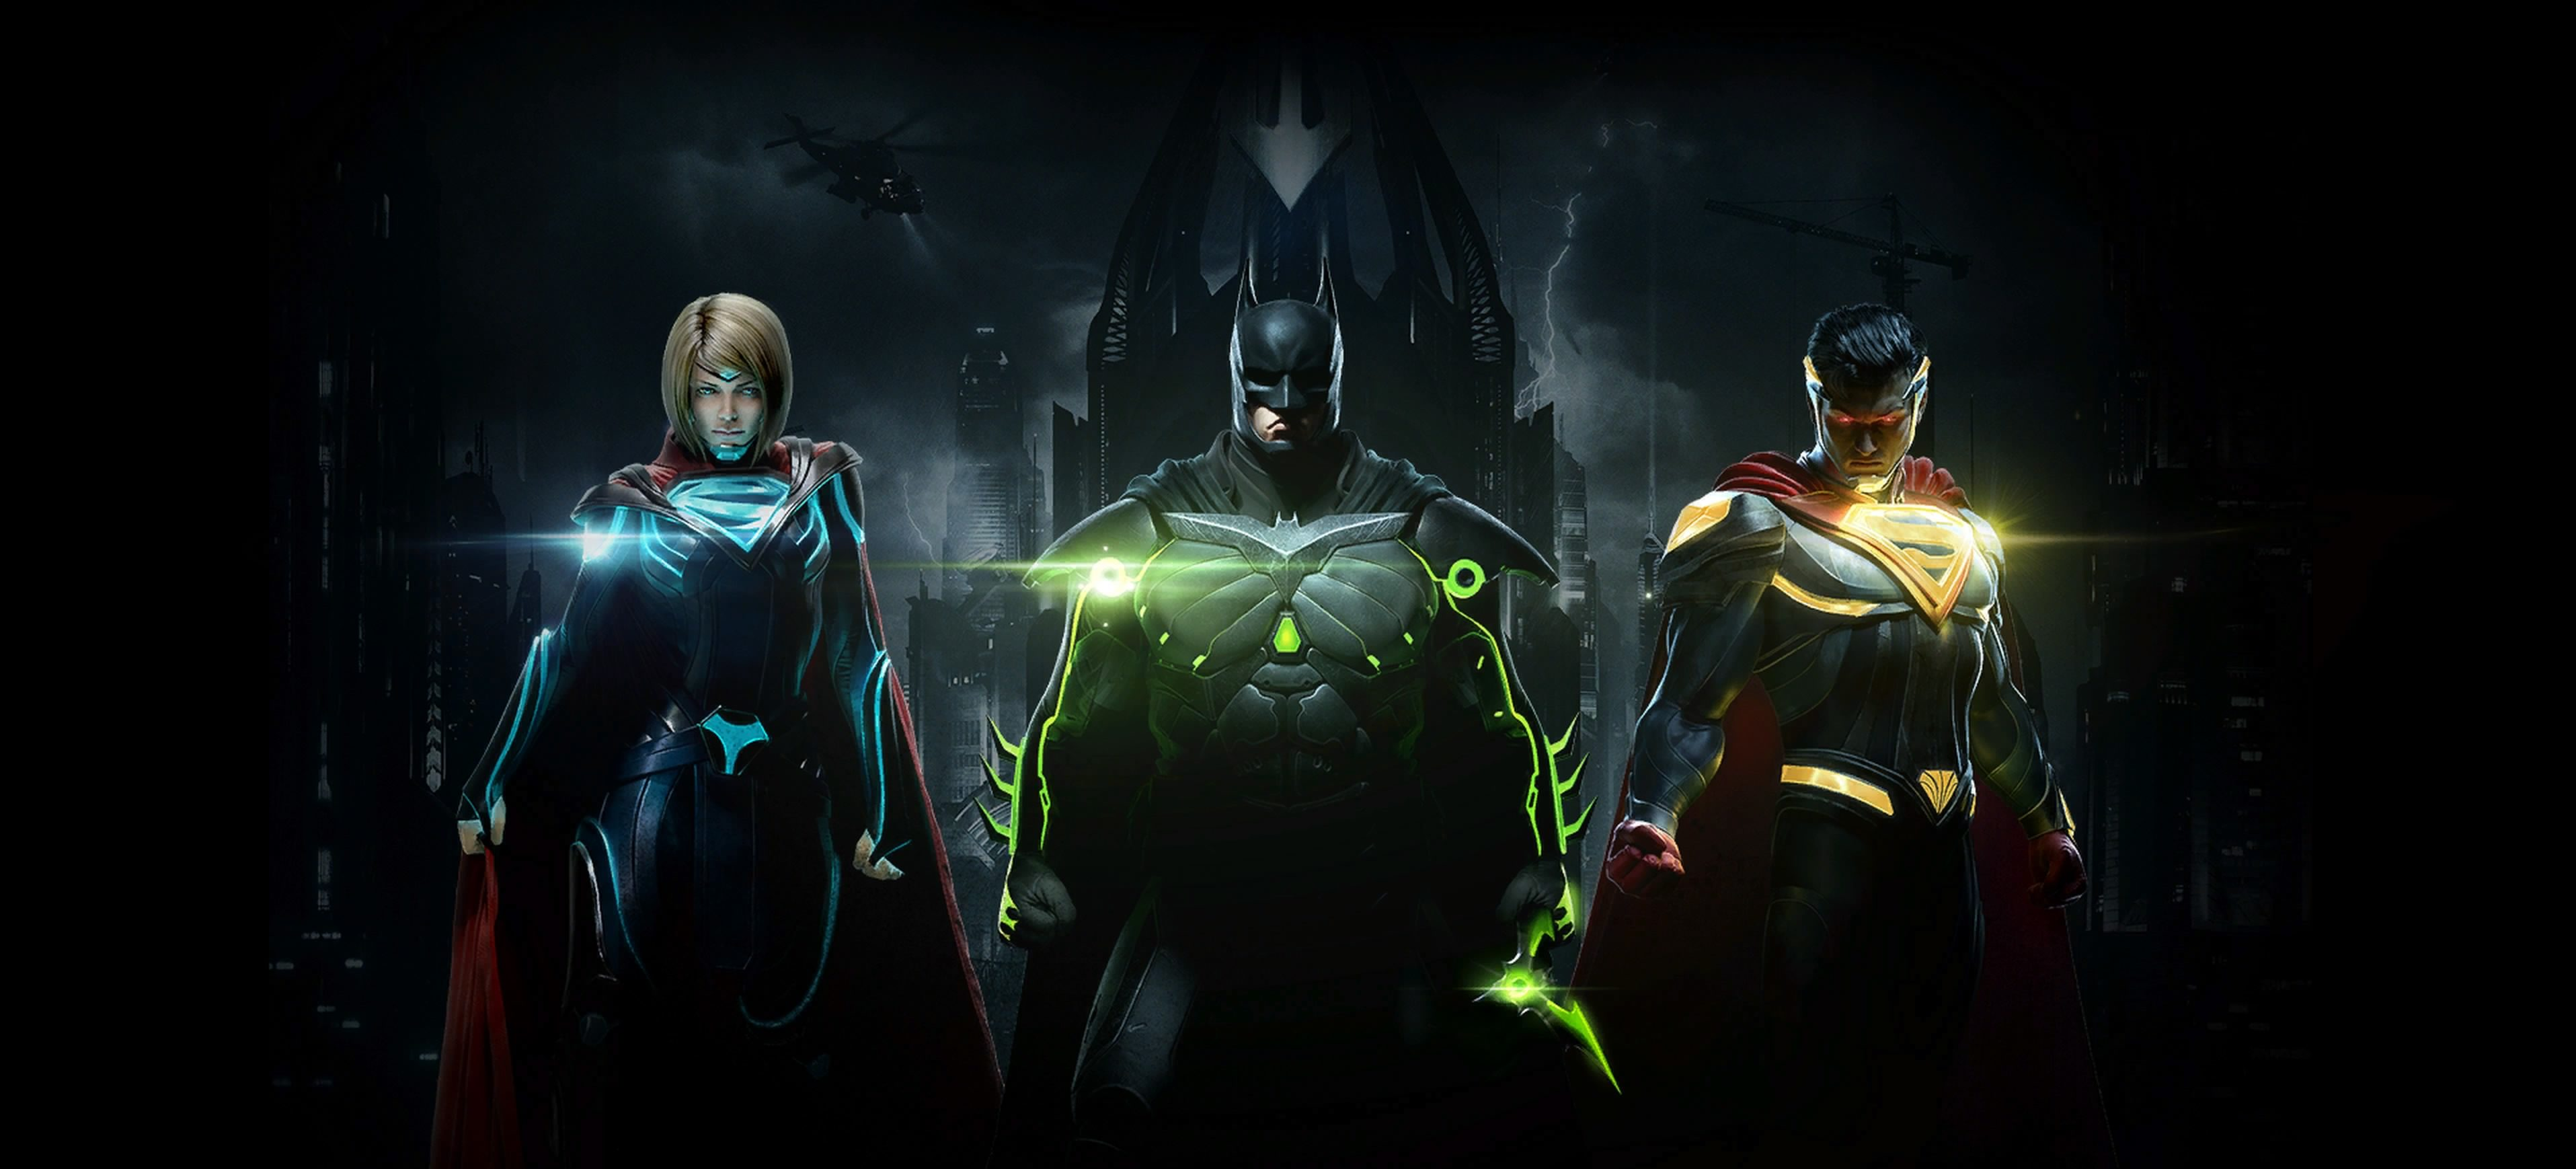 Injustice 2 Superman Hd Games 4k Wallpapers Images: [Updated] Injustice 2 PC Has Been Listed By Amazon France